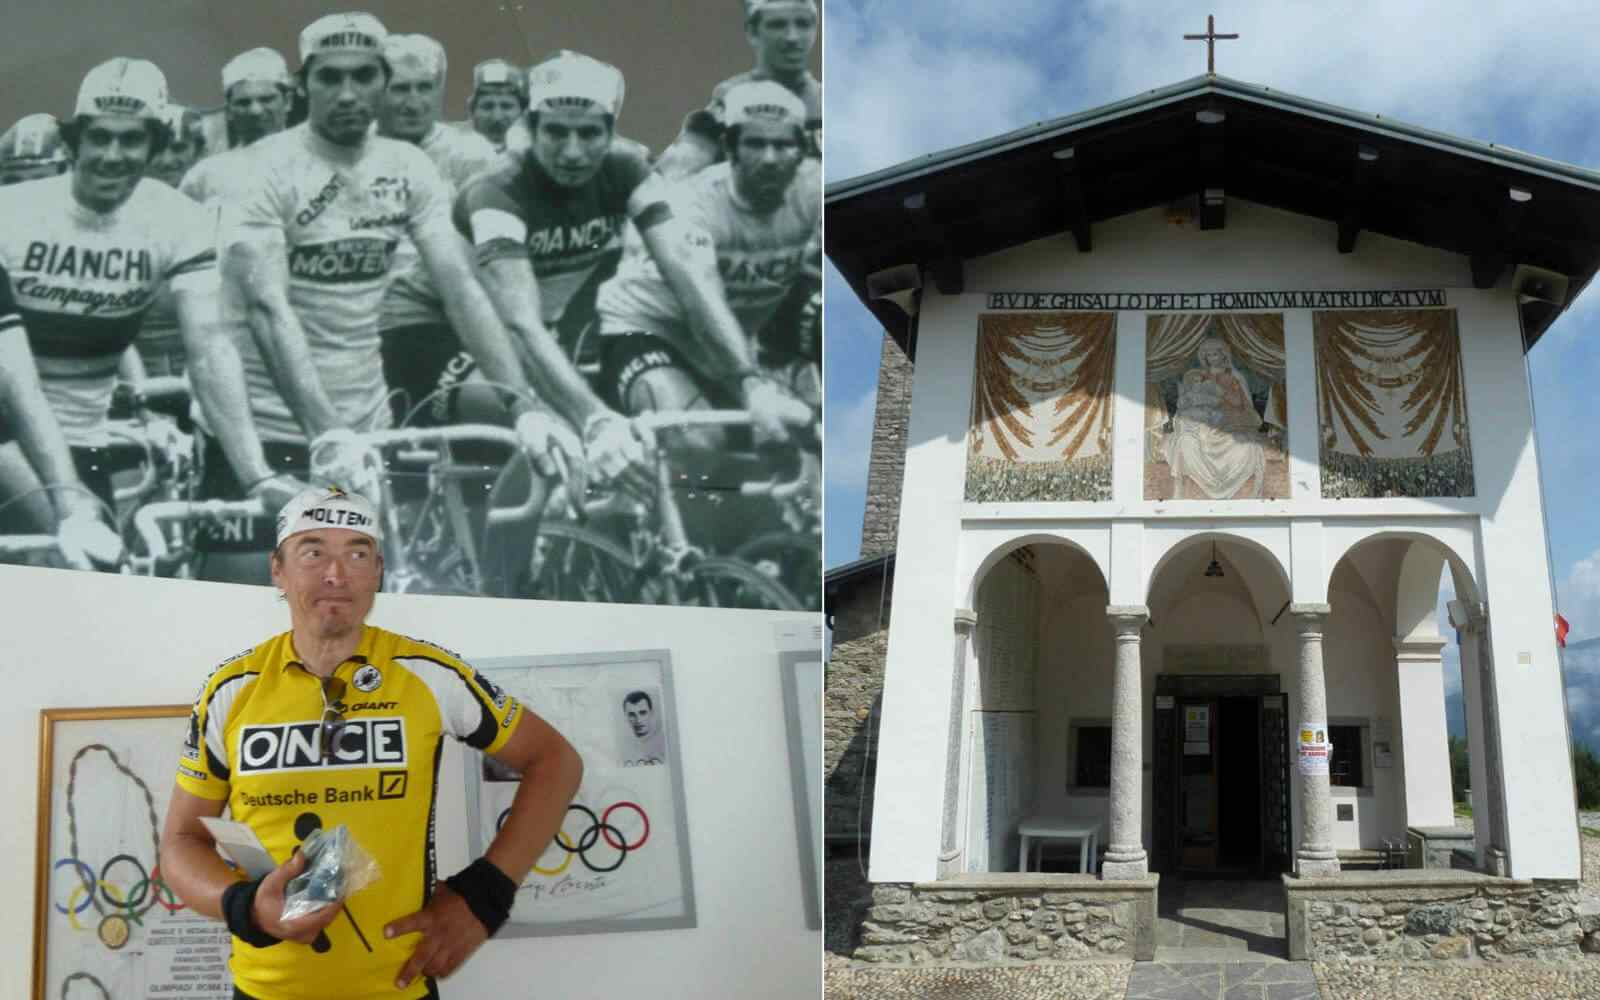 Madonna del Ghisallo and cyclist with Molteni cap